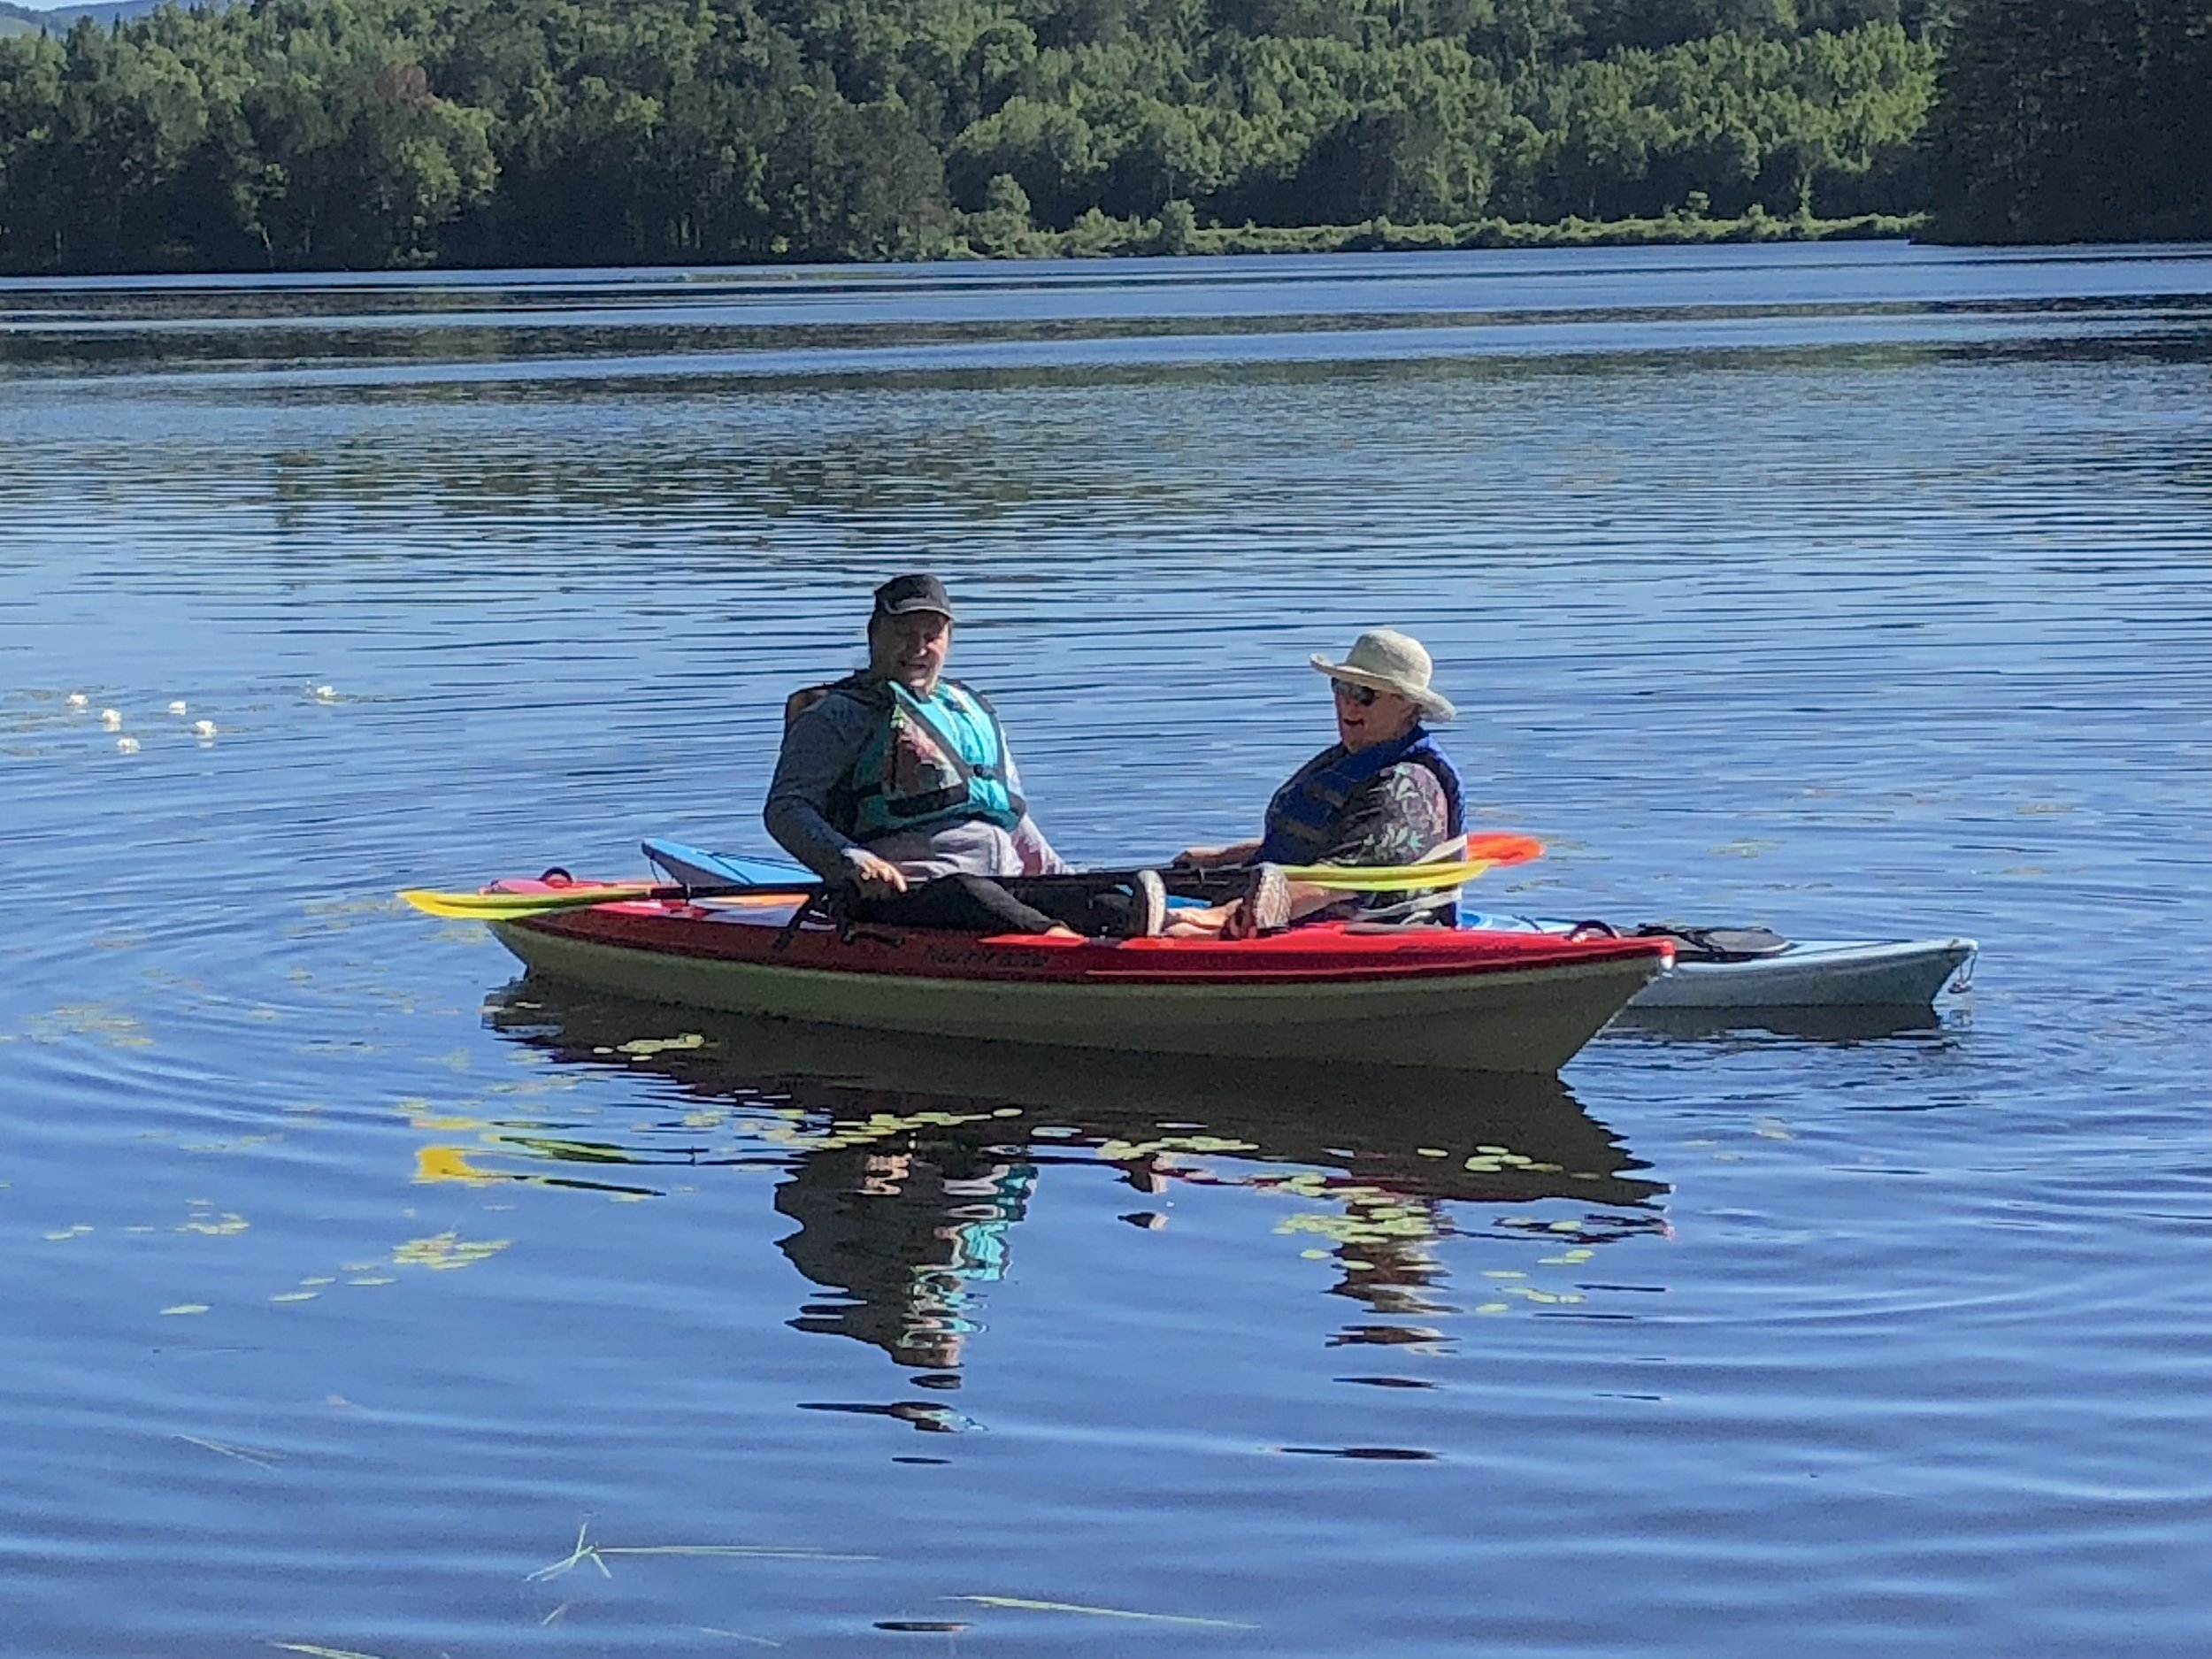 With a waterfront site, I had kayaking sisters like Laurie, Bonnie, and Kim cruise by for a quick hello.